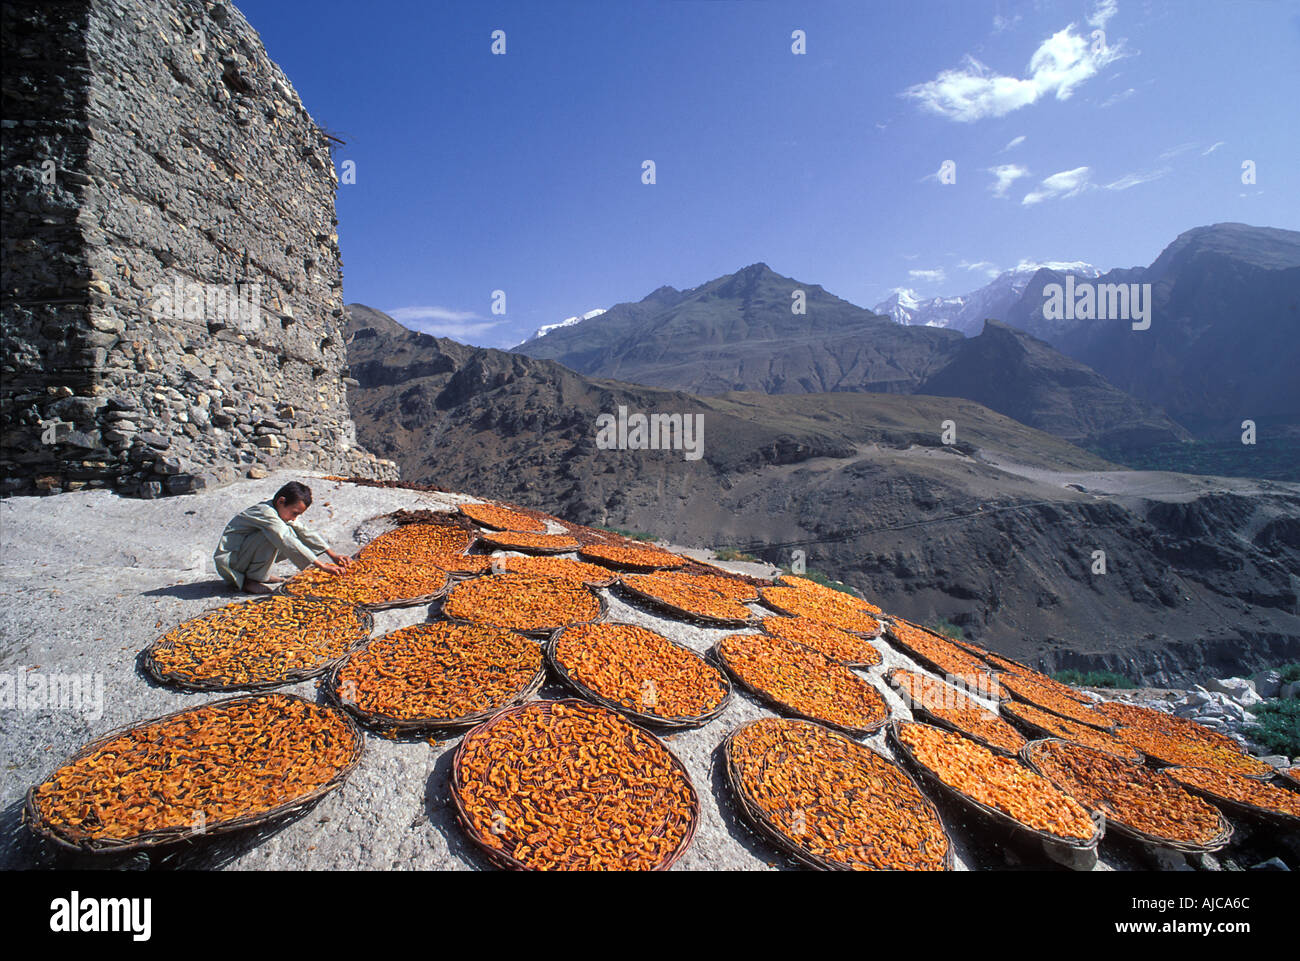 PAKISTAN Sunbaked Apricots laid in baskets to dry Altit Fort Karimabad Hunza Valley Karakoram Highway Pakistan - Stock Image